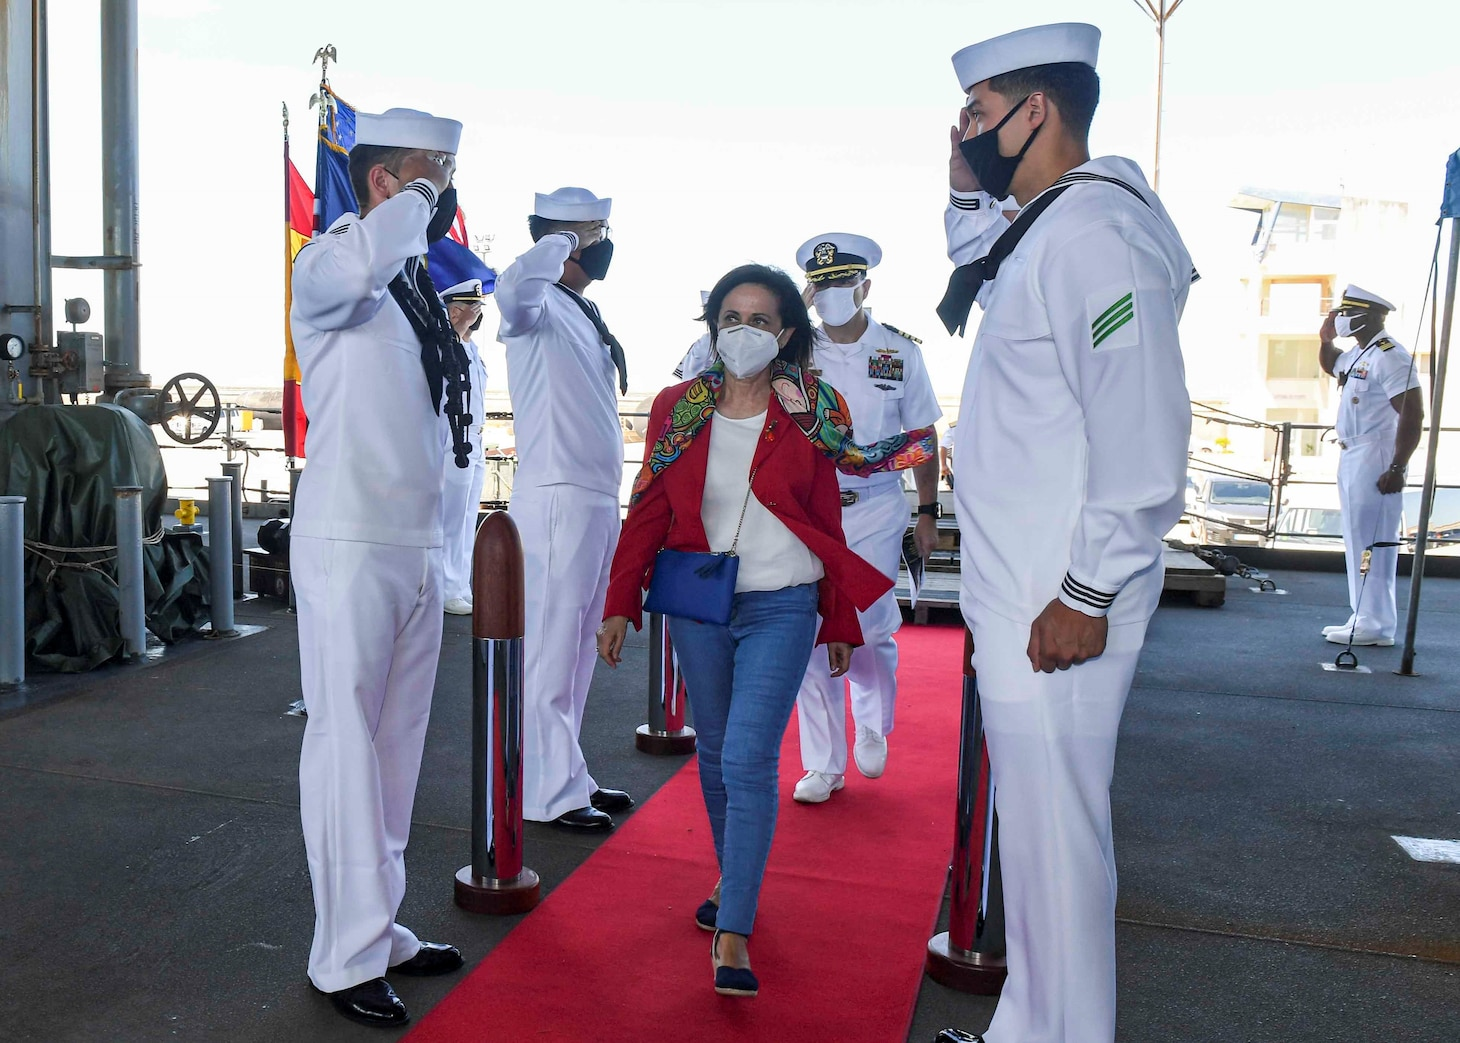 """(July 8, 2021) Spanish Minister of Defense Margarita Robles walks through the side boys before receiving a tour aboard the Expeditionary Sea Base USS Hershel """"Woody"""" Williams (ESB 4) in the Atlantic Ocean, July 8, 2021. Hershel """"Woody"""" Williams is on a scheduled deployment in the U.S. Sixth Fleet area of operations in support of U.S. national interests and security in Europe and Africa."""